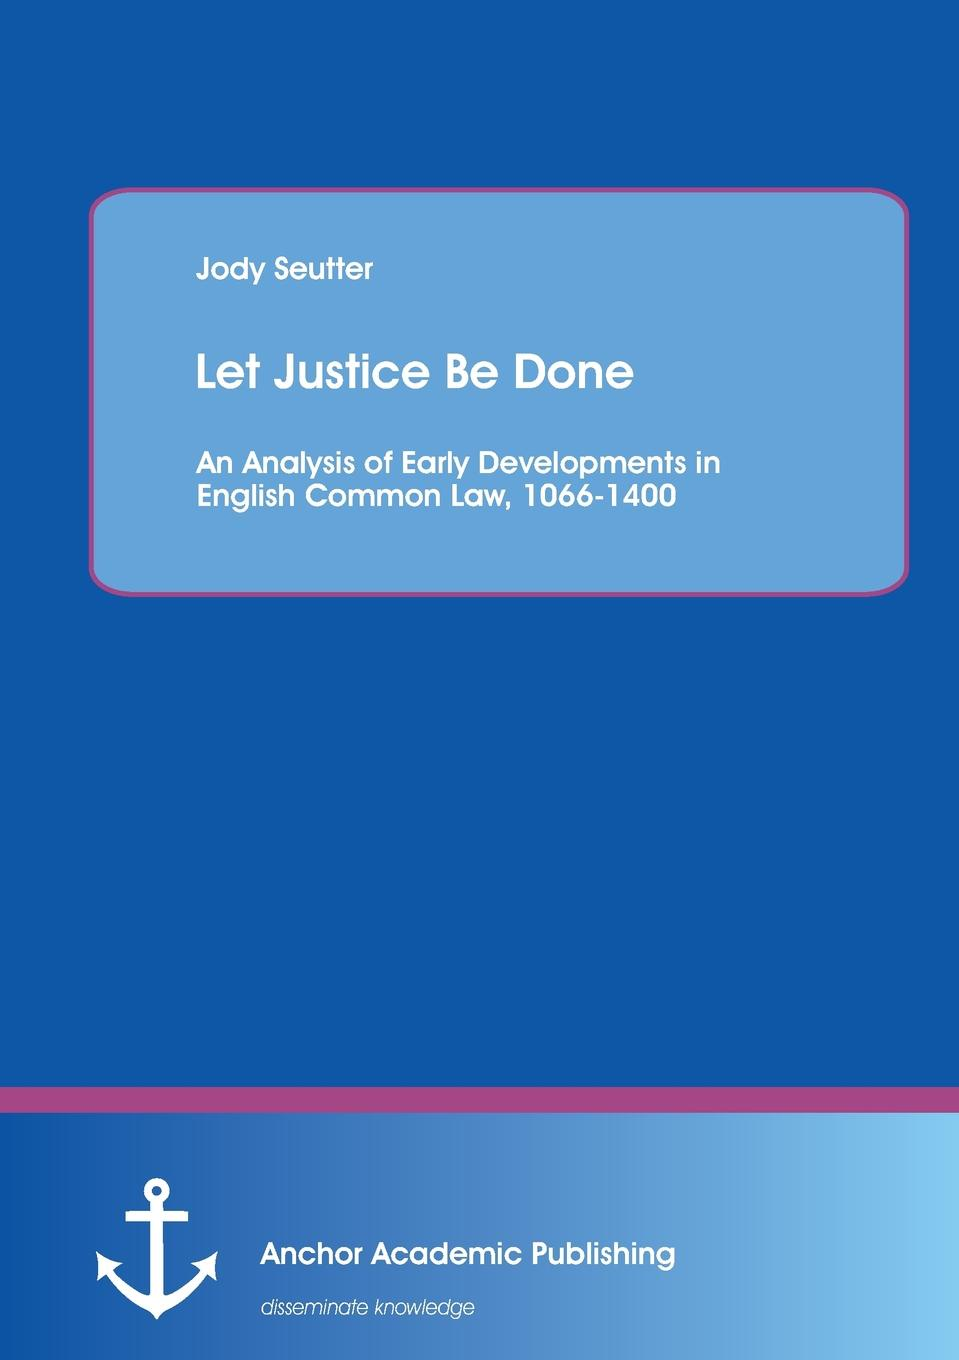 где купить Jody Seutter Let Justice Be Done. An Analysis of Early Developments in English Common Law, 1066-1400 по лучшей цене